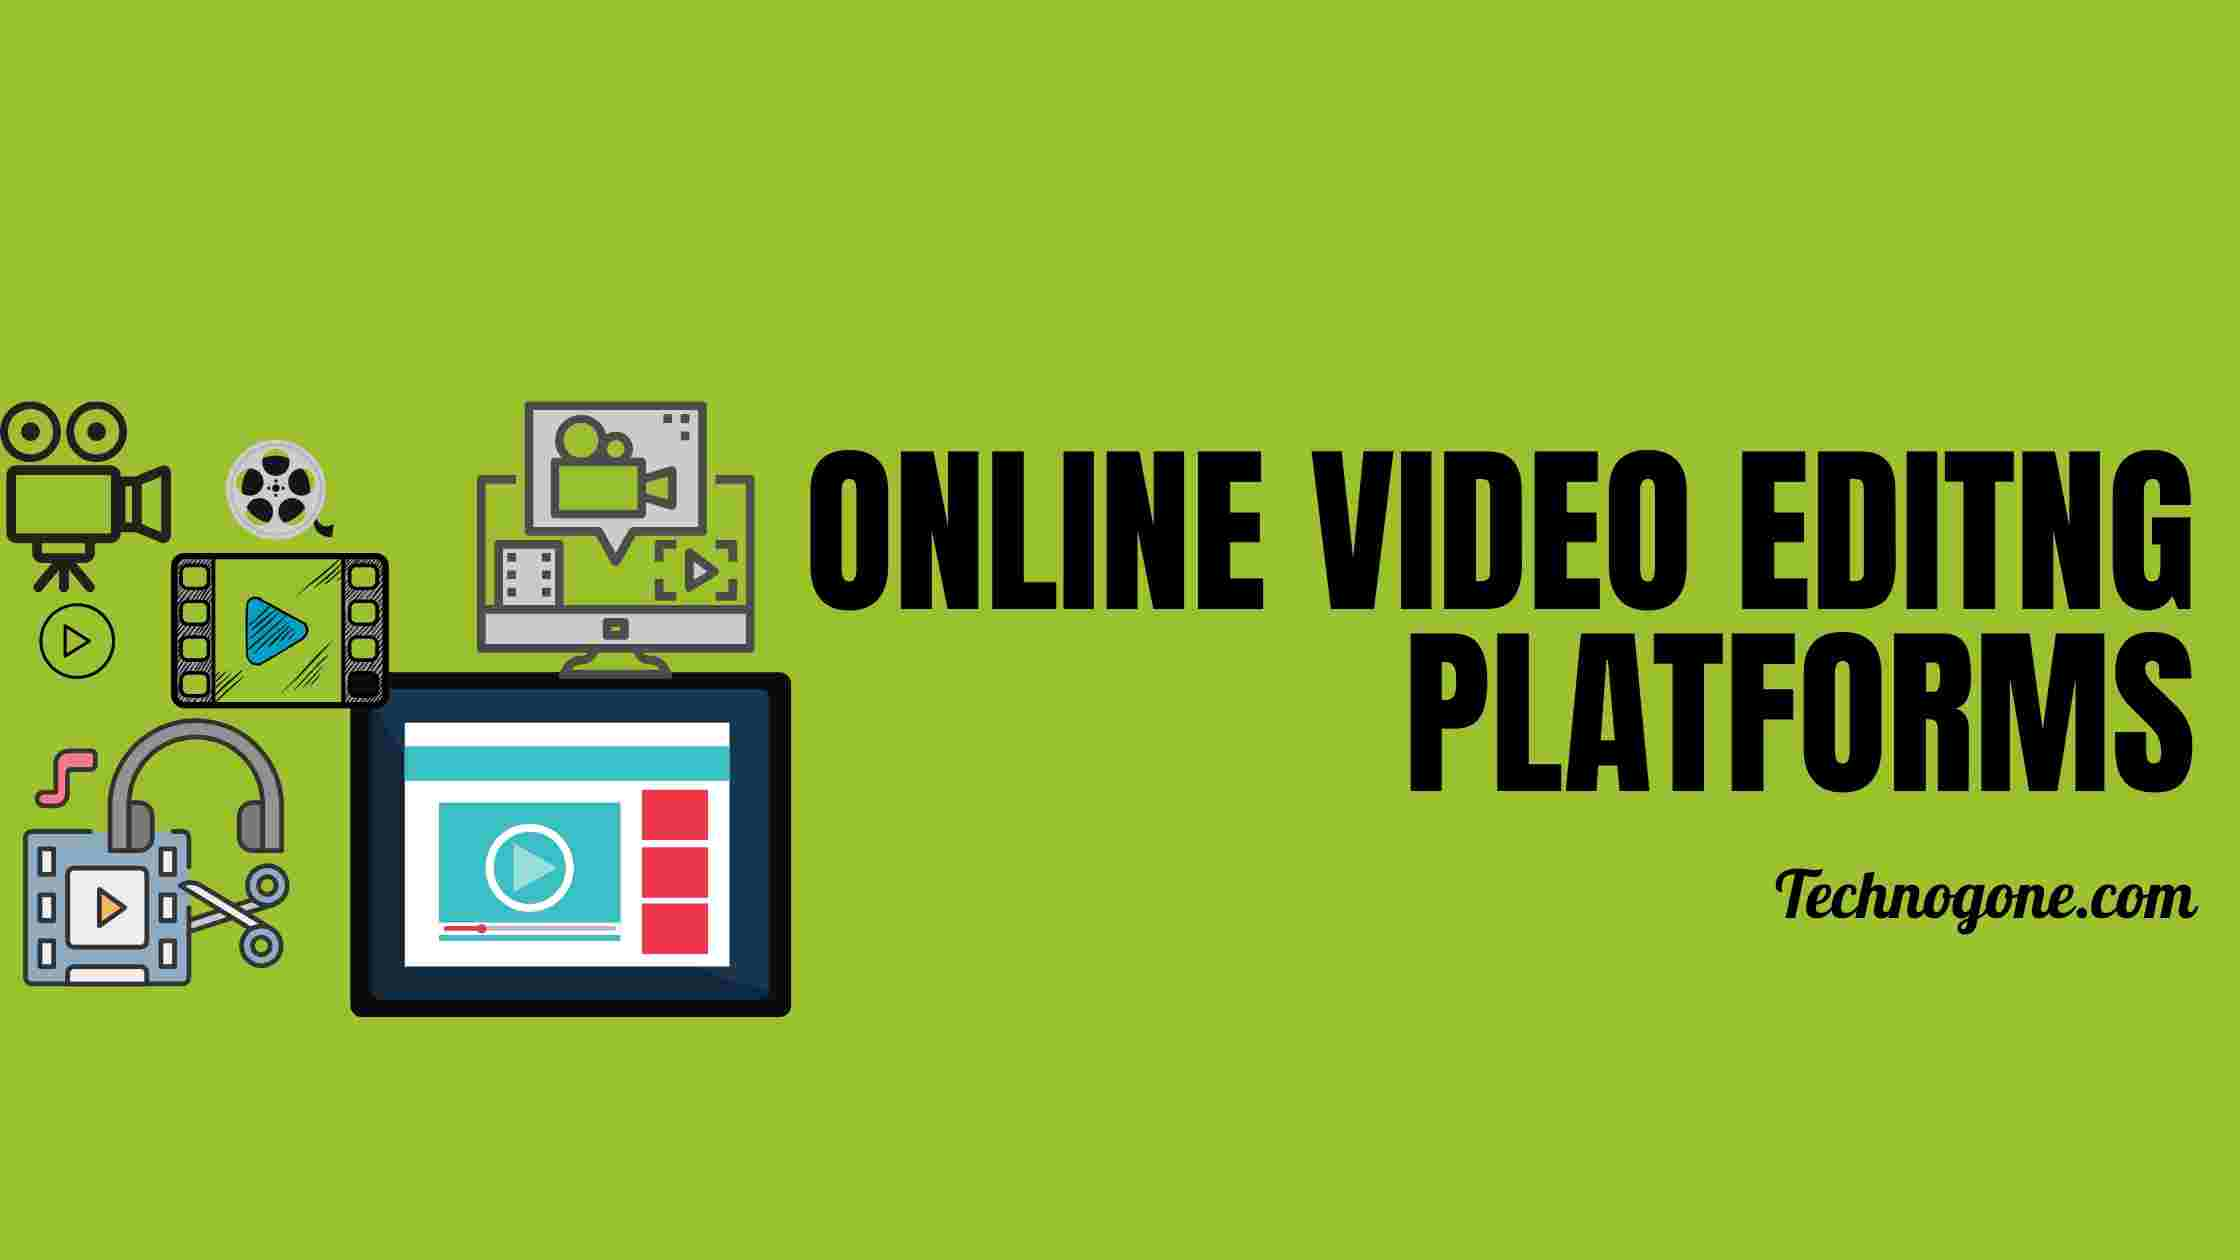 Top 6 Online Video Editing Platforms to Create Your Own Animated Videos